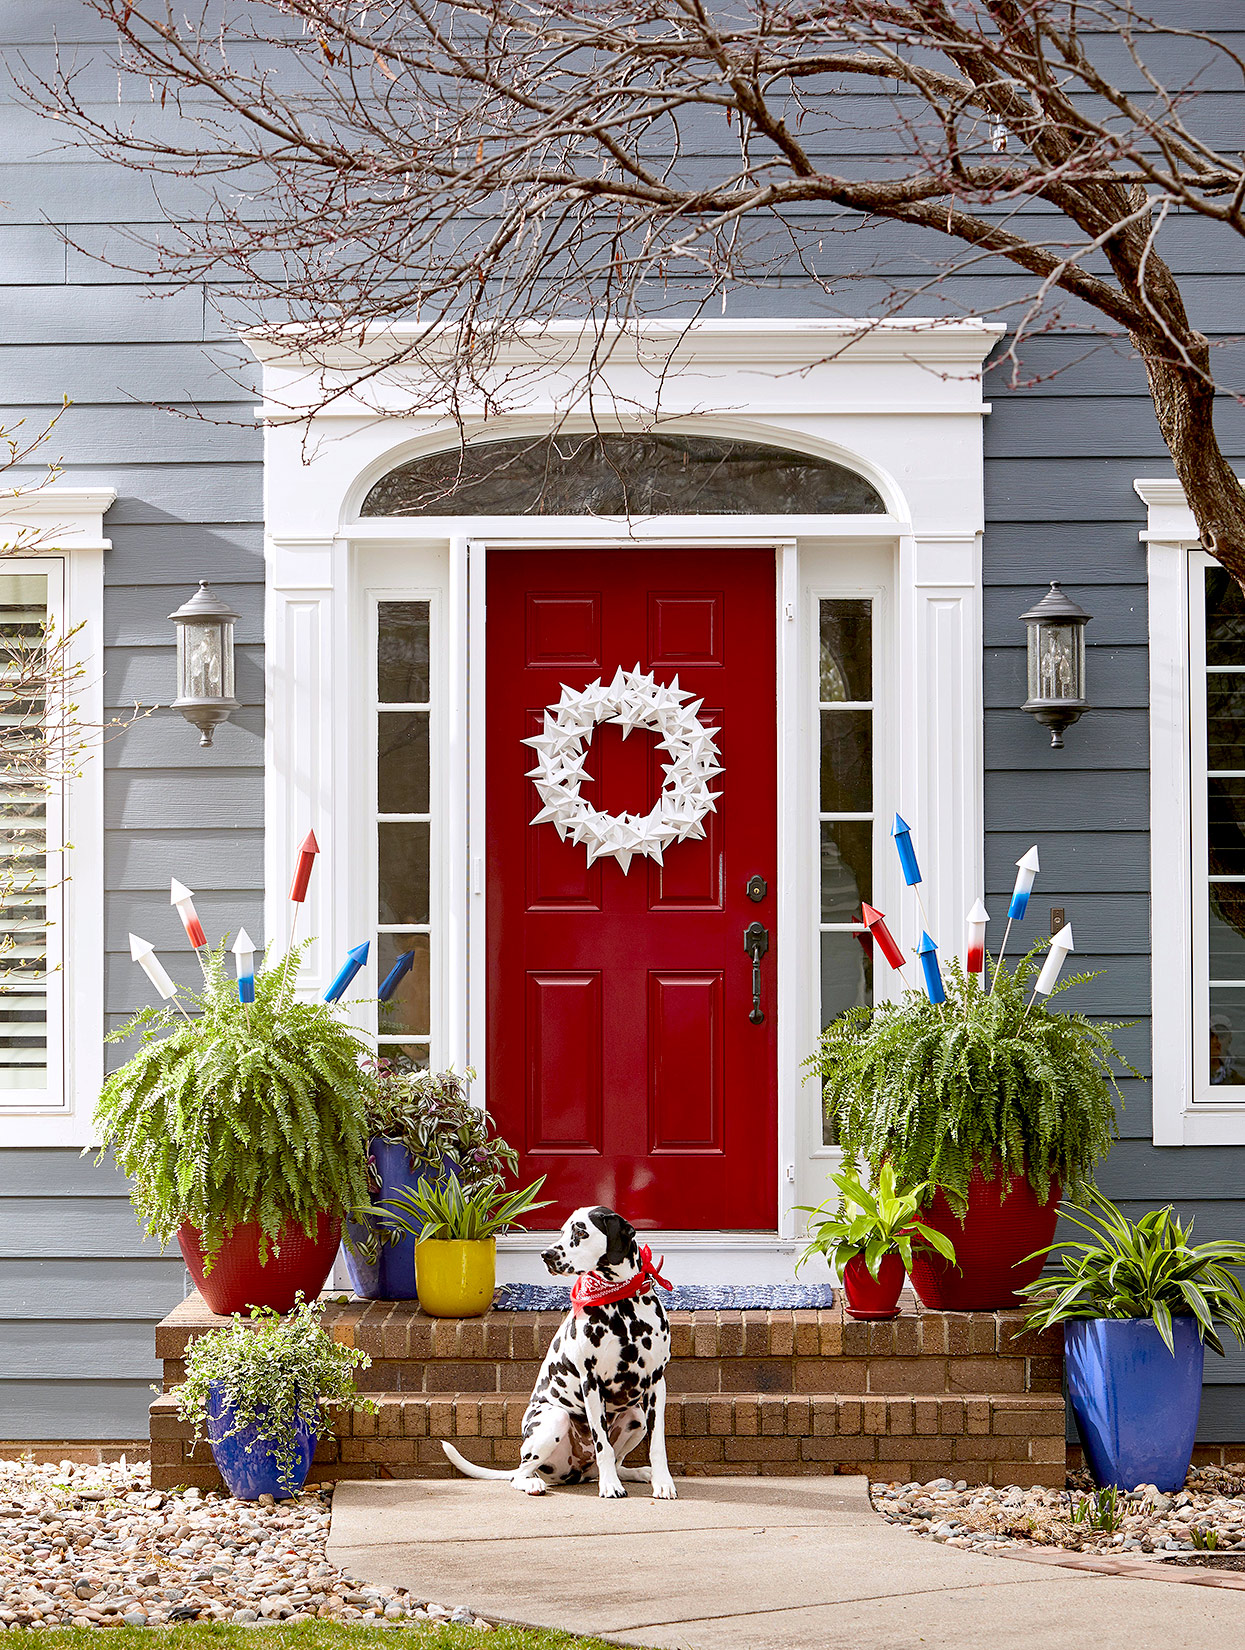 house facade with patriotic decor and dalmation